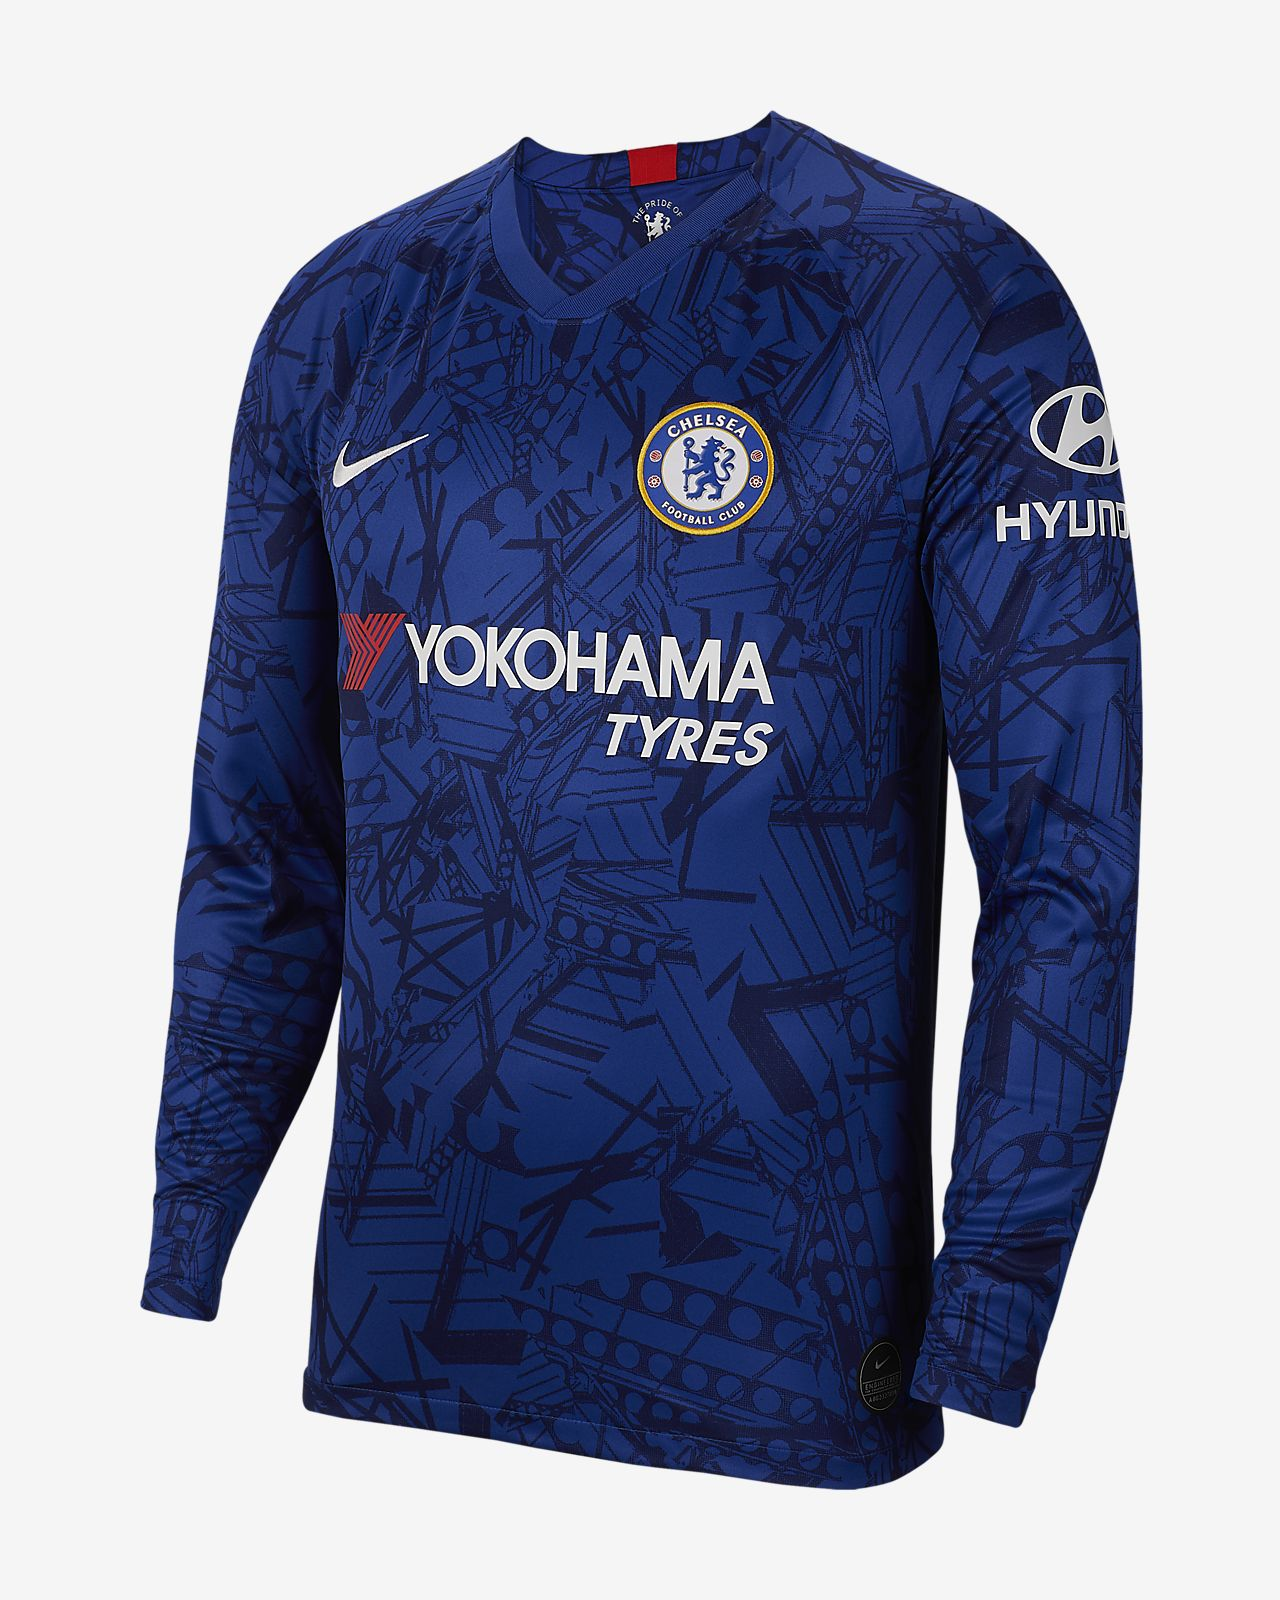 quality design 2d54a ffbdf Chelsea FC 2019/20 Stadium Home Men's Long-Sleeve Soccer Jersey